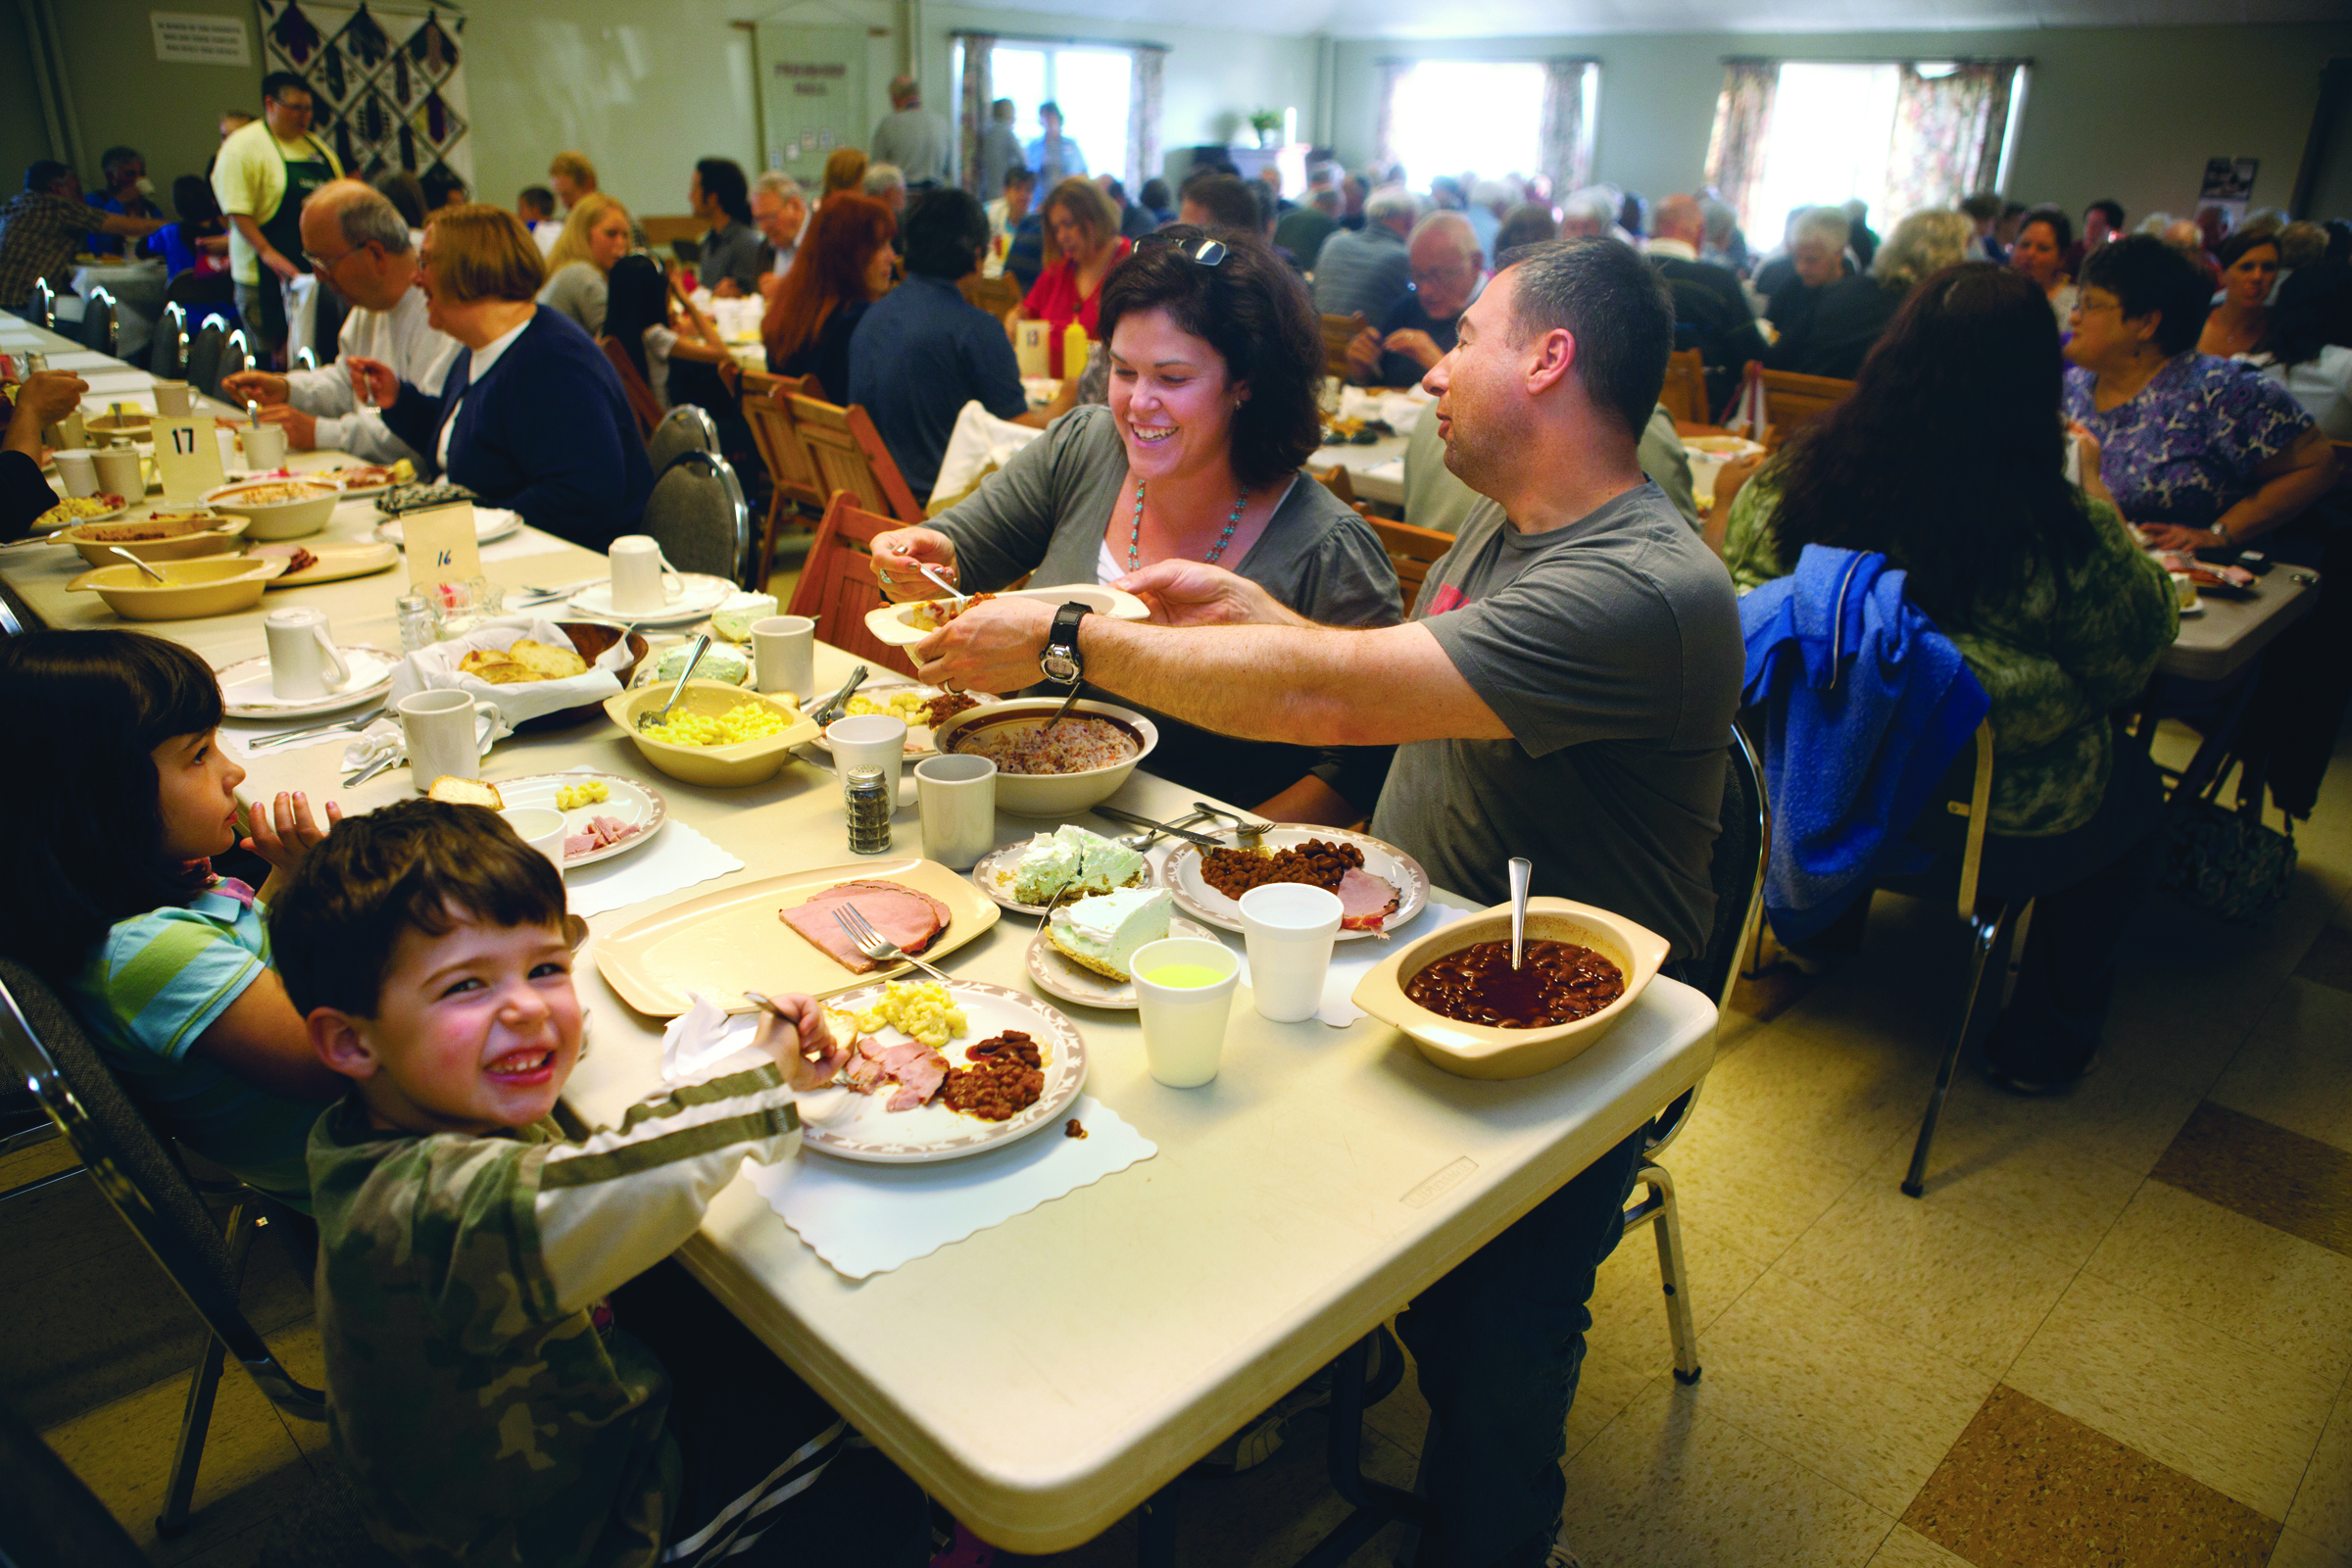 Maine S Bean Supper Is A Tradition That Dates Back Centuries And May Have Its Roots With The Pilgrims Who Made Baked Beans And Brown Bread The Night Before